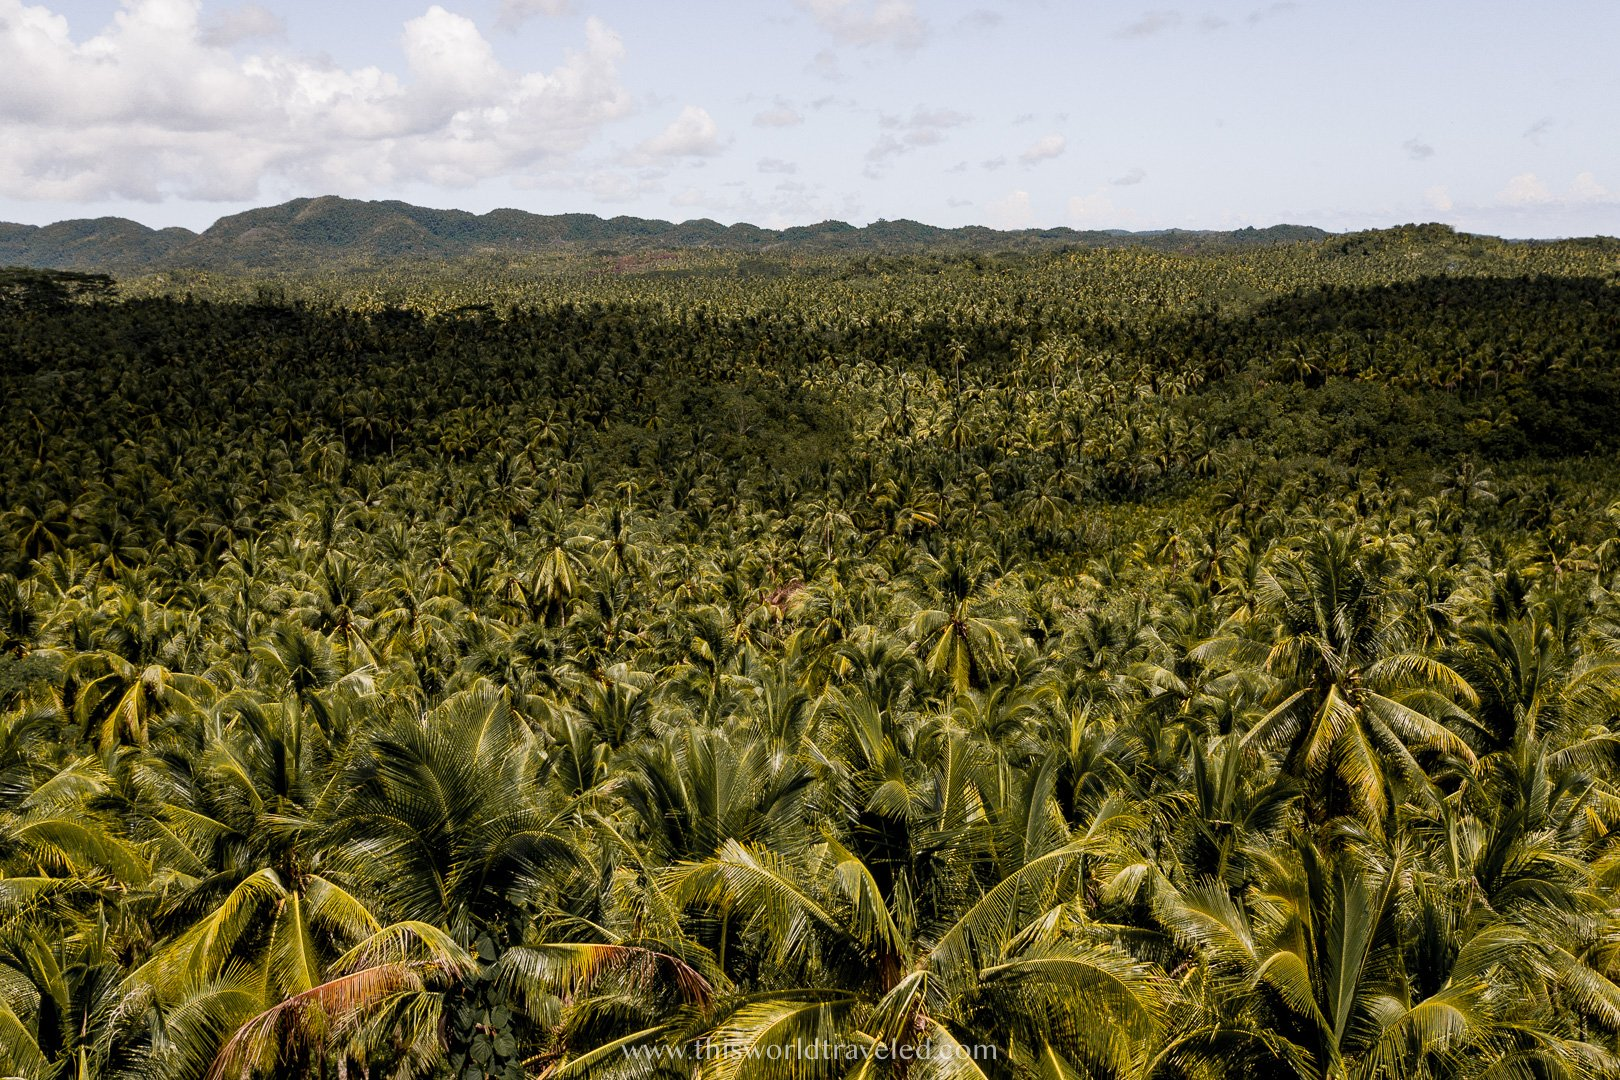 A large forest of palm trees as far as the eye can see